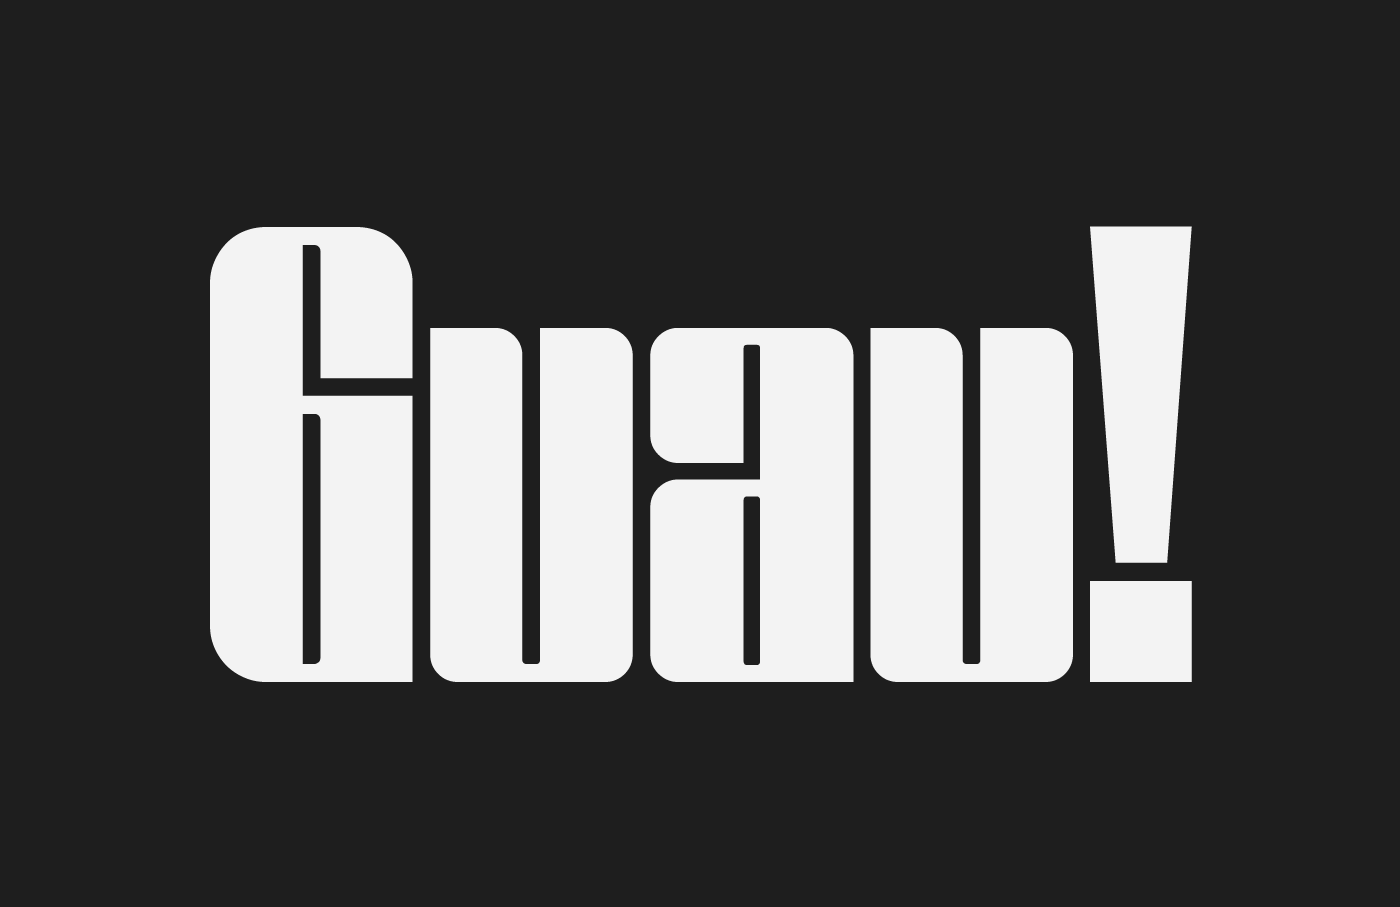 tipografia type fuente FontLab typography   Typeface Free font diseño gráfico graphic design  display font